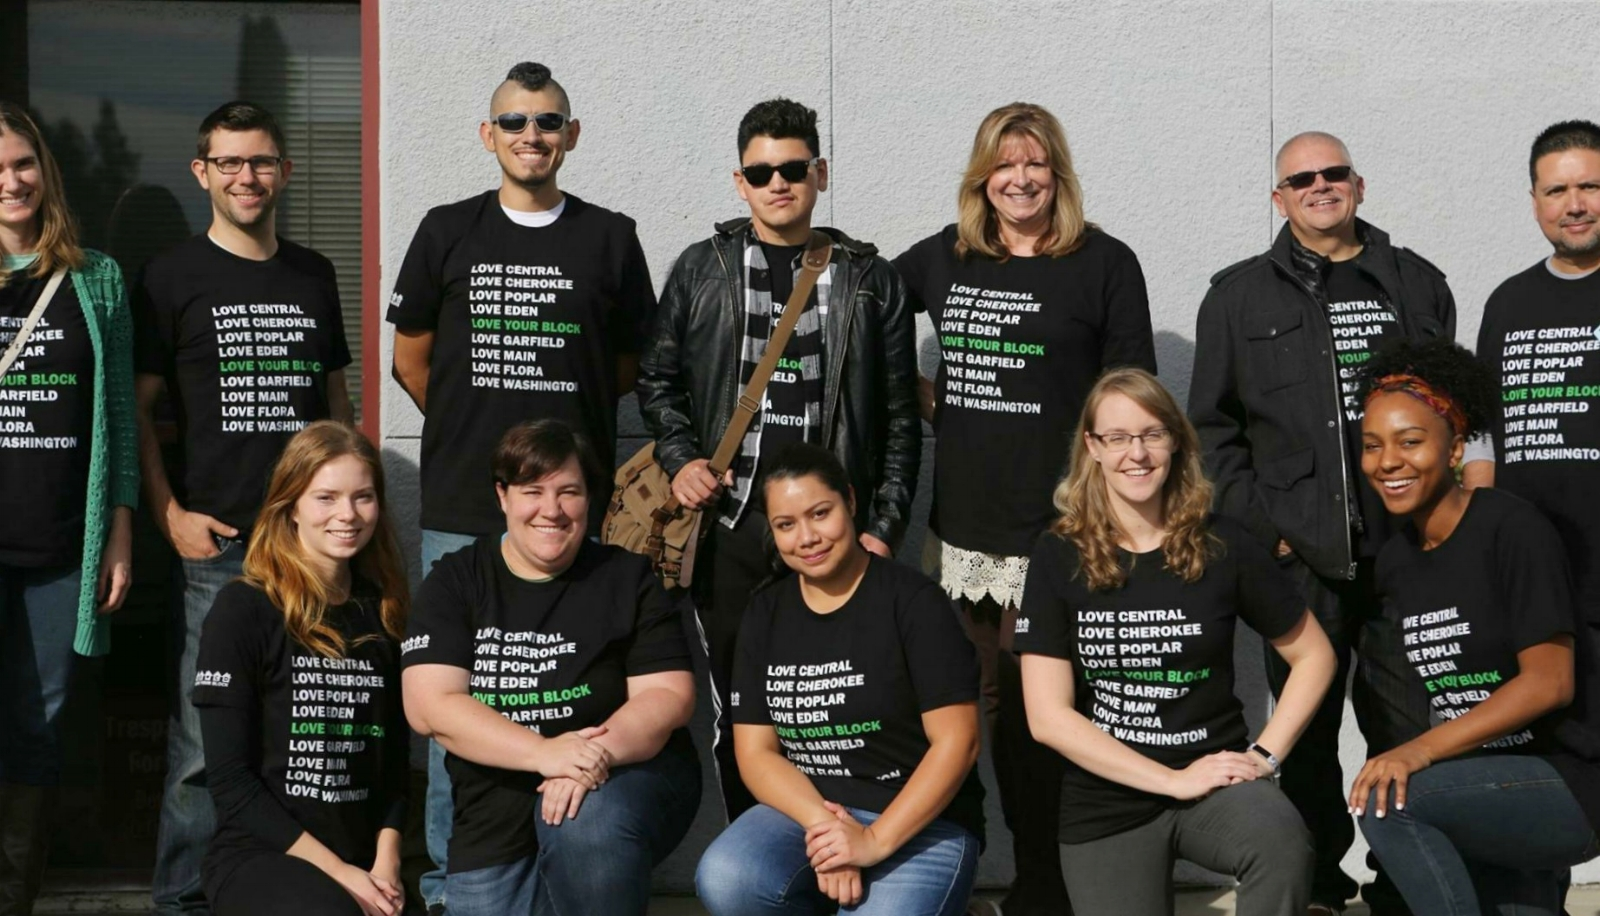 ABCD Love Your Blocks team, photo courtesy of Lodi Chamber